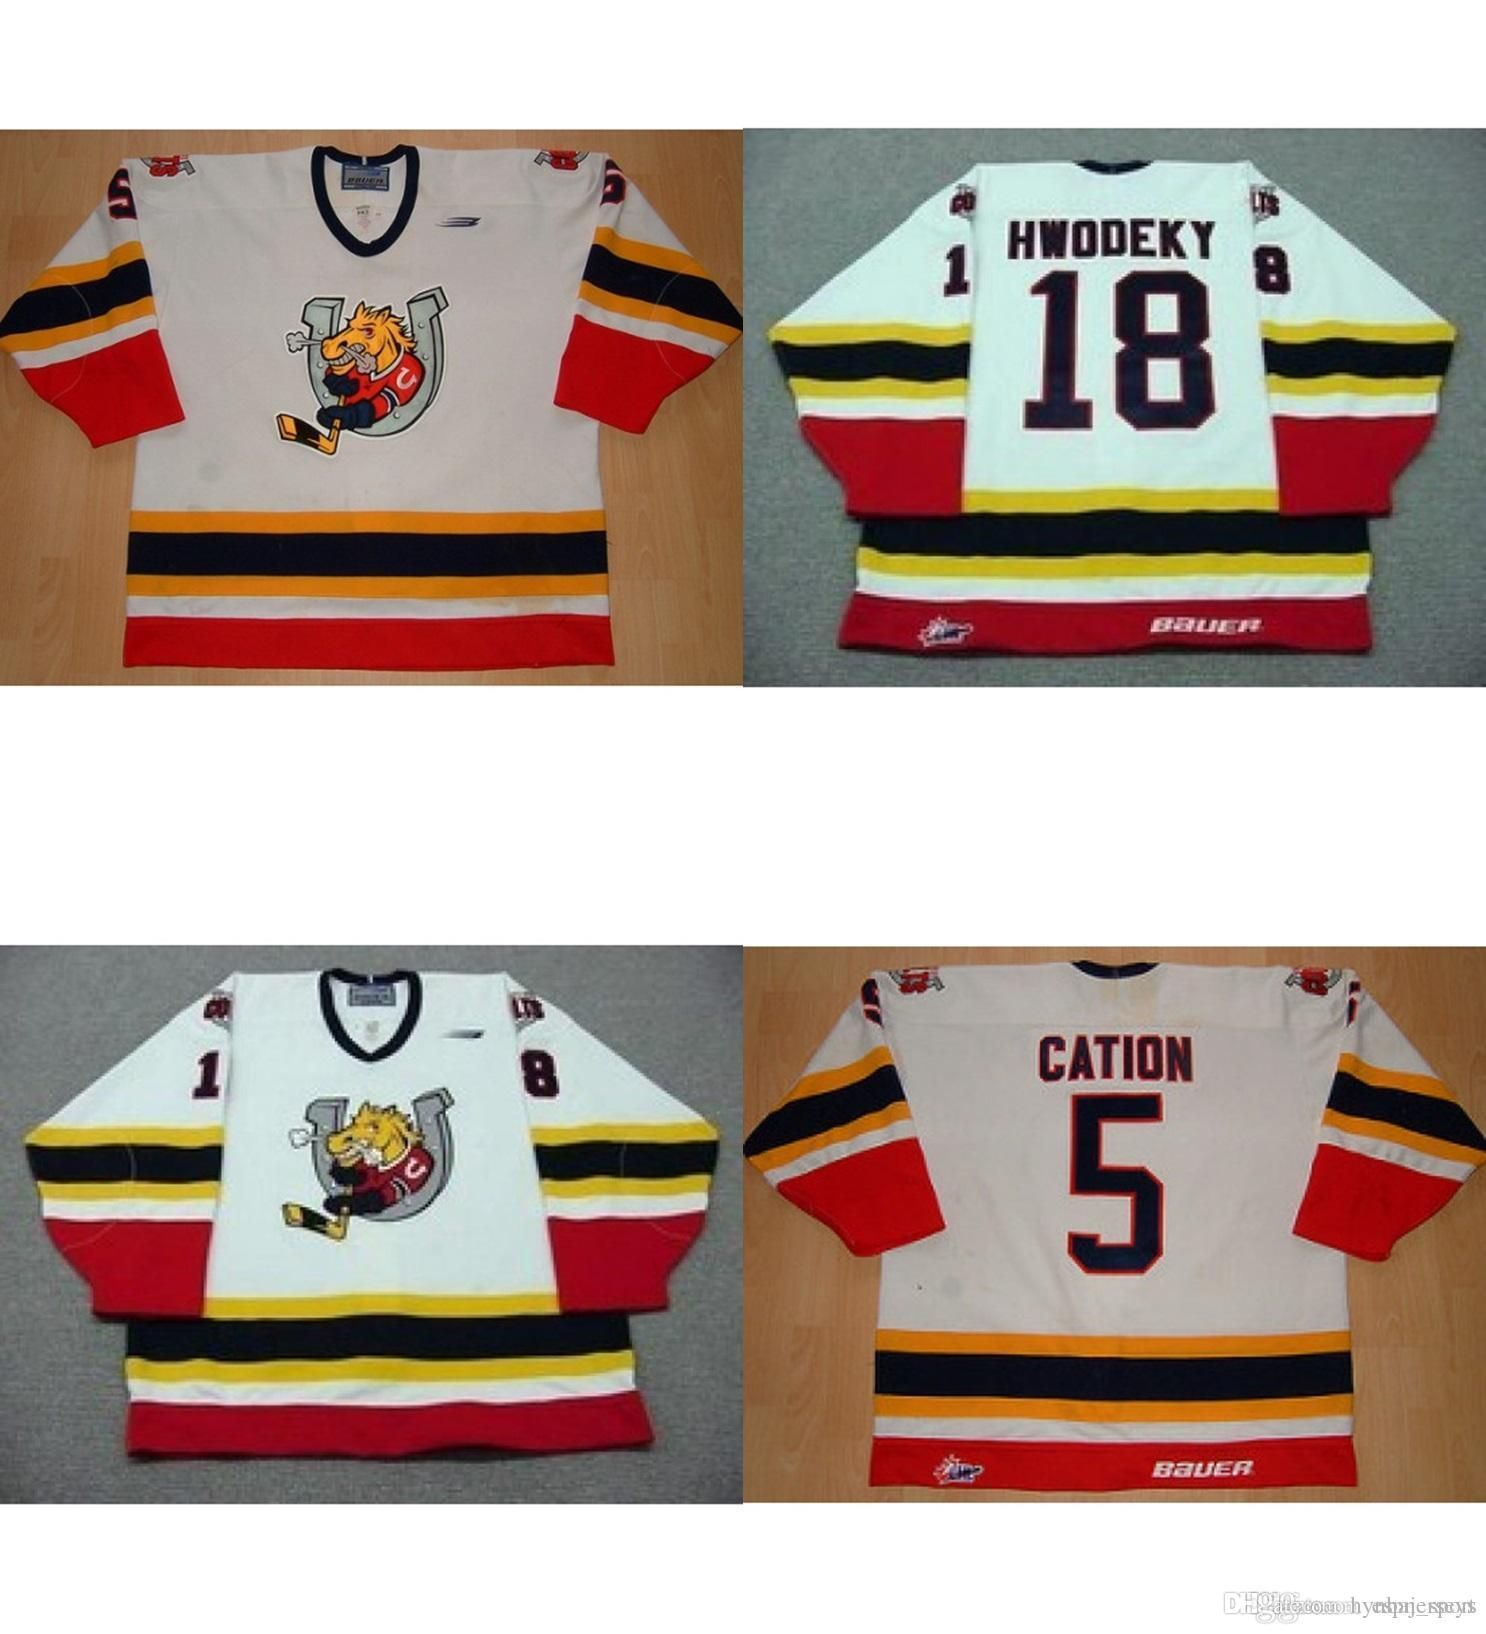 2019 Custom Personalized OHL Barrie Colts Jersey 18 Rick Hwodeky 5 Cation  Best Quality Ice Hockey Cheap Jerseys Customized Goalit Cut From  Hynbajerseys e8284a604